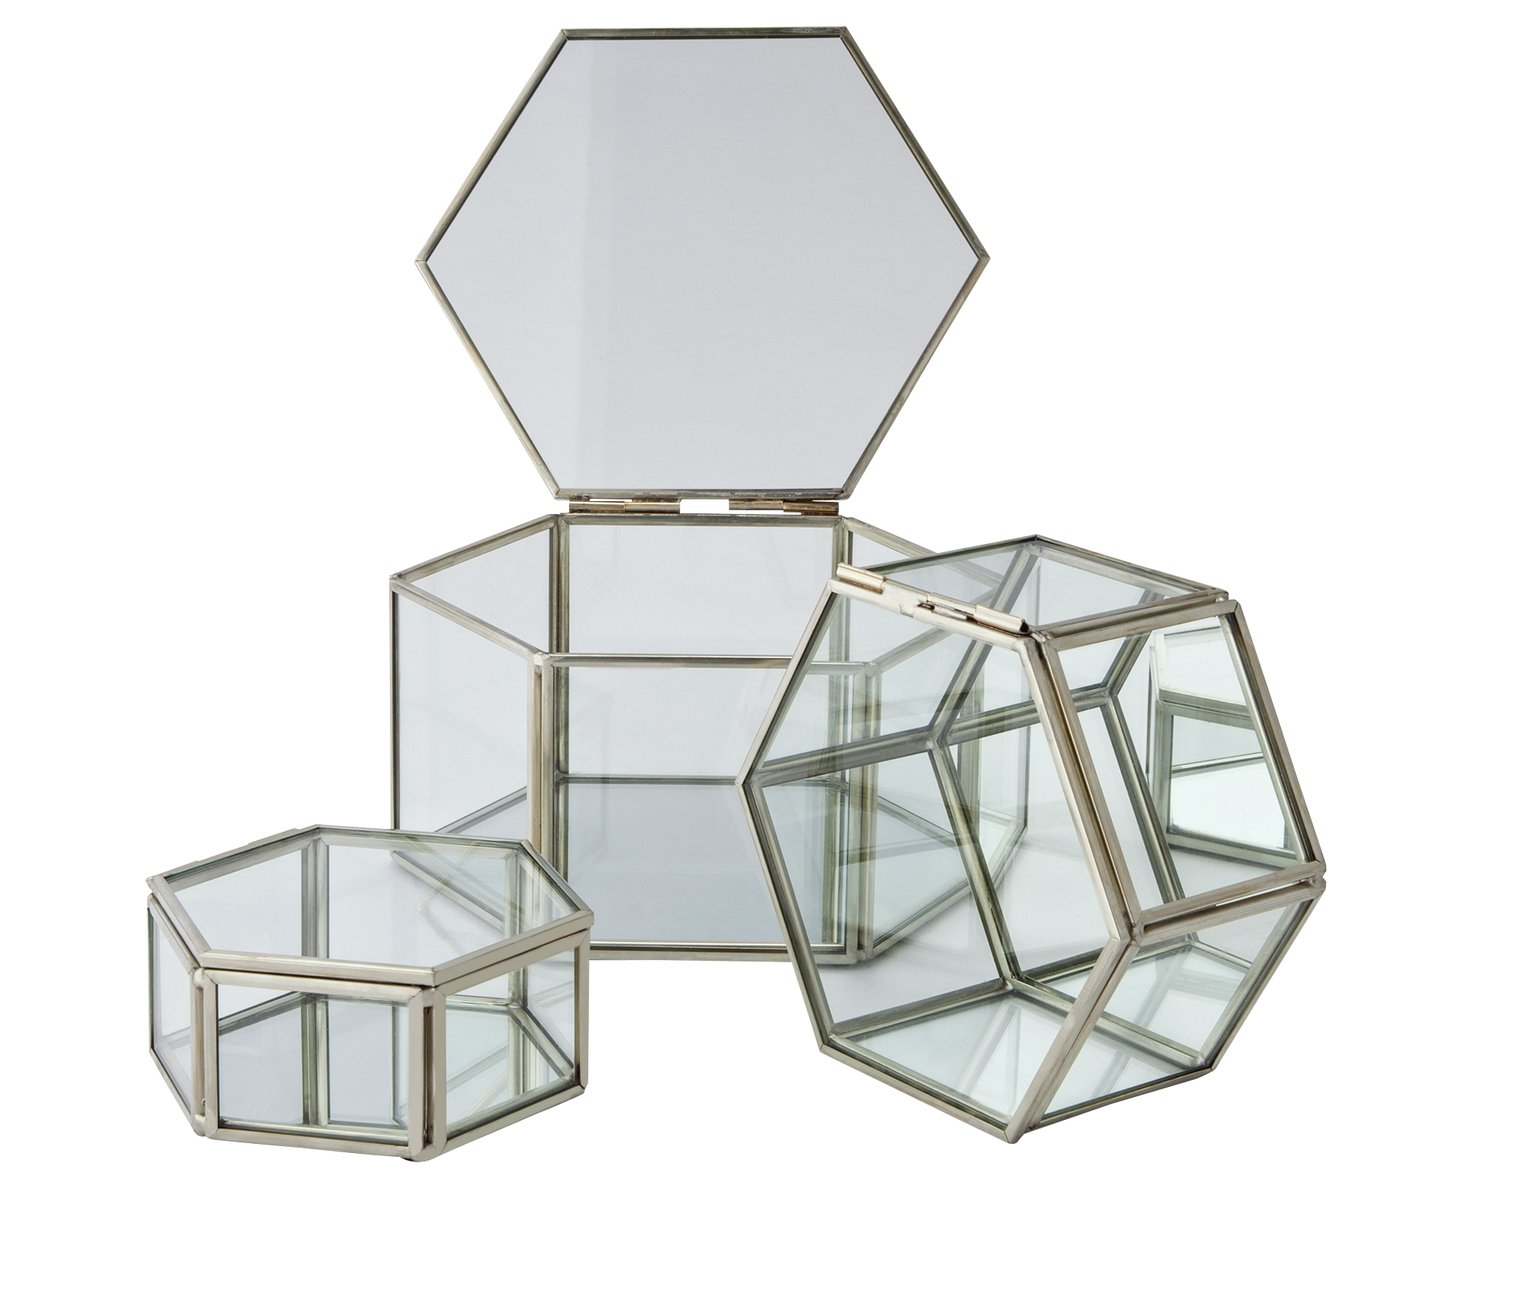 Silver Edged Glass Trinket Boxes - Set of 3